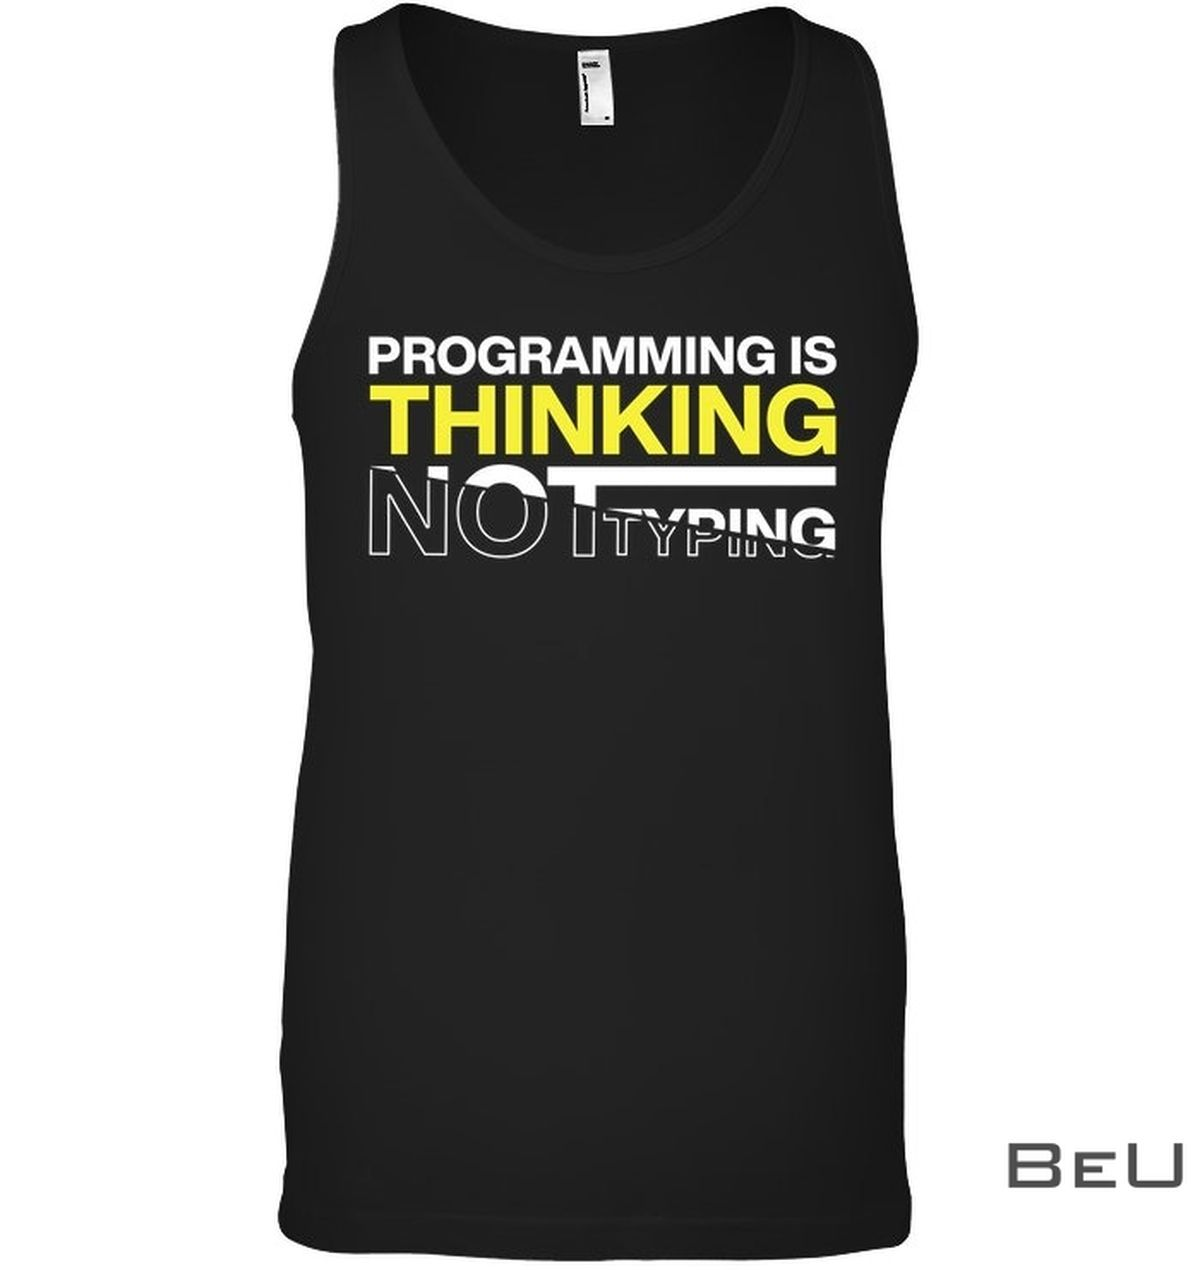 Programming Is Thinking Not Typing Shirtx